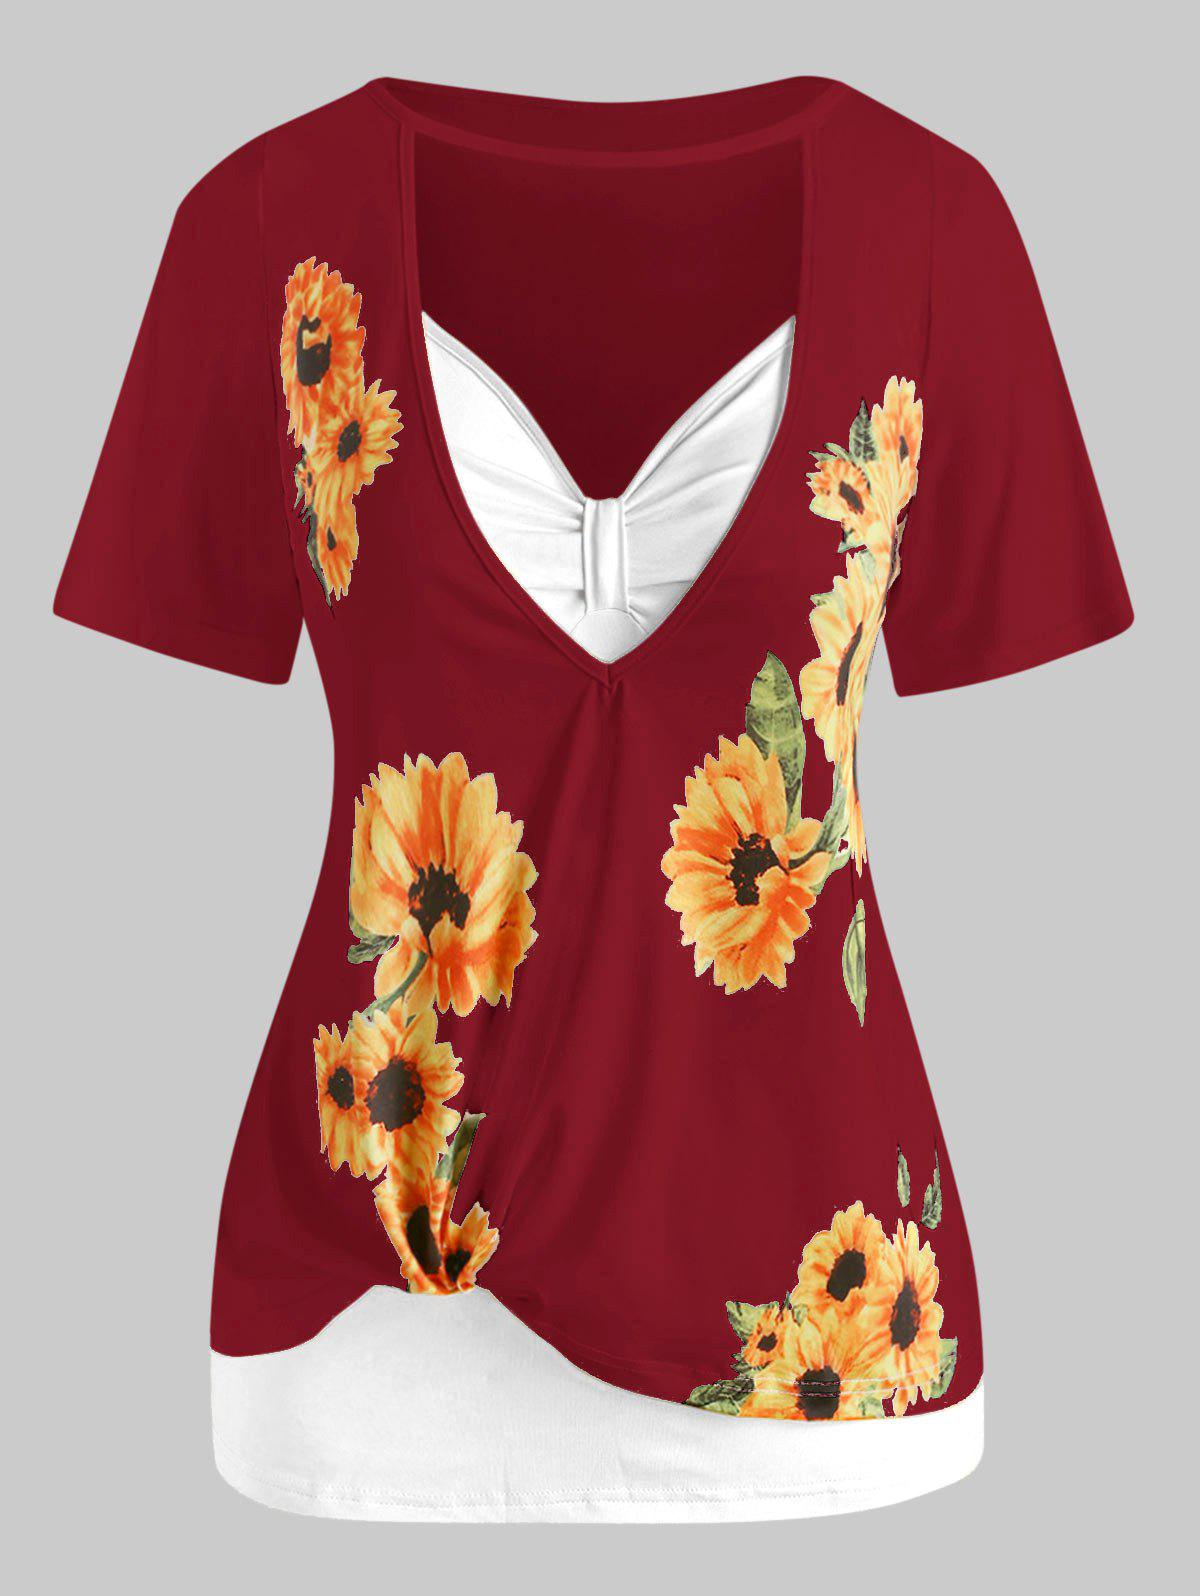 Plus Size Sunflower Print Cutout Tee and Tank Top Set - DEEP RED 5X